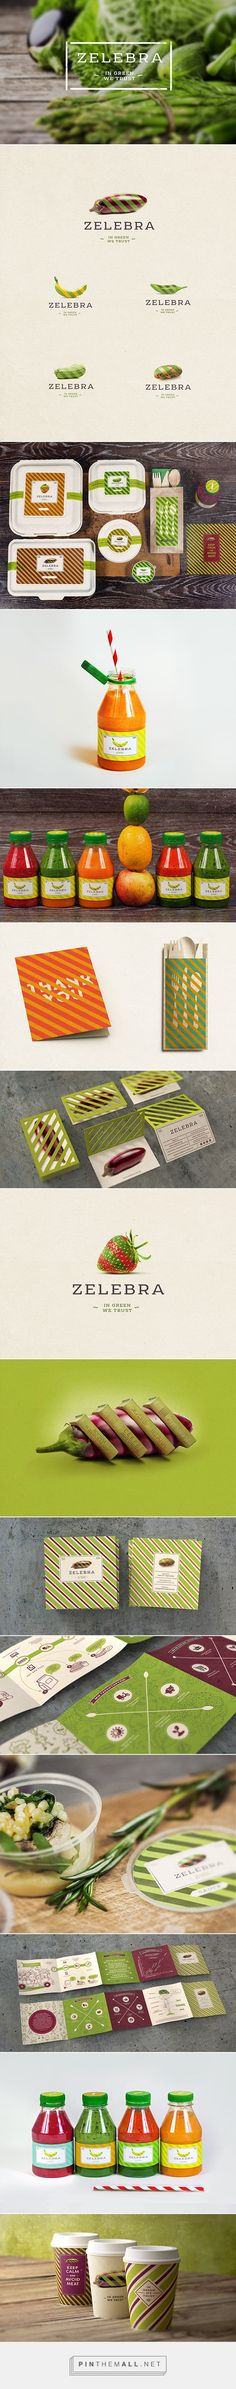 Zelebra Vegan Food & Delivery... - a grouped images picture - Pin Them All